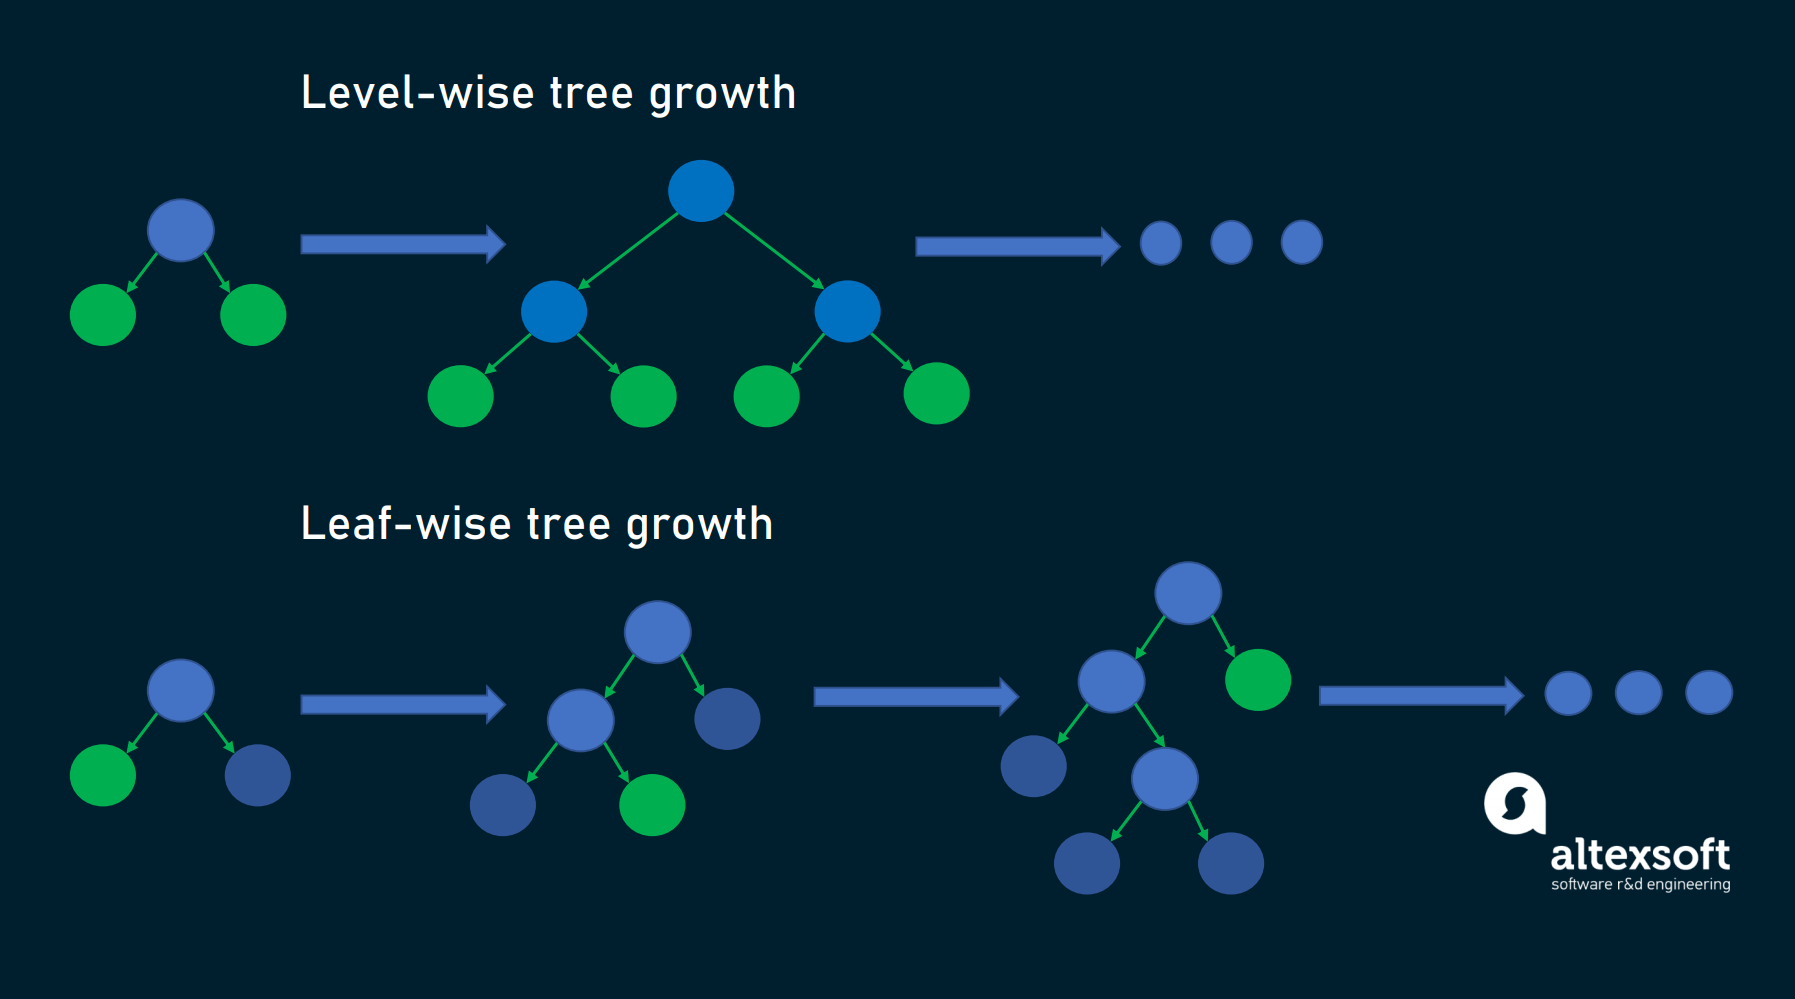 level-wise tree growth vs lead-wise tree growth